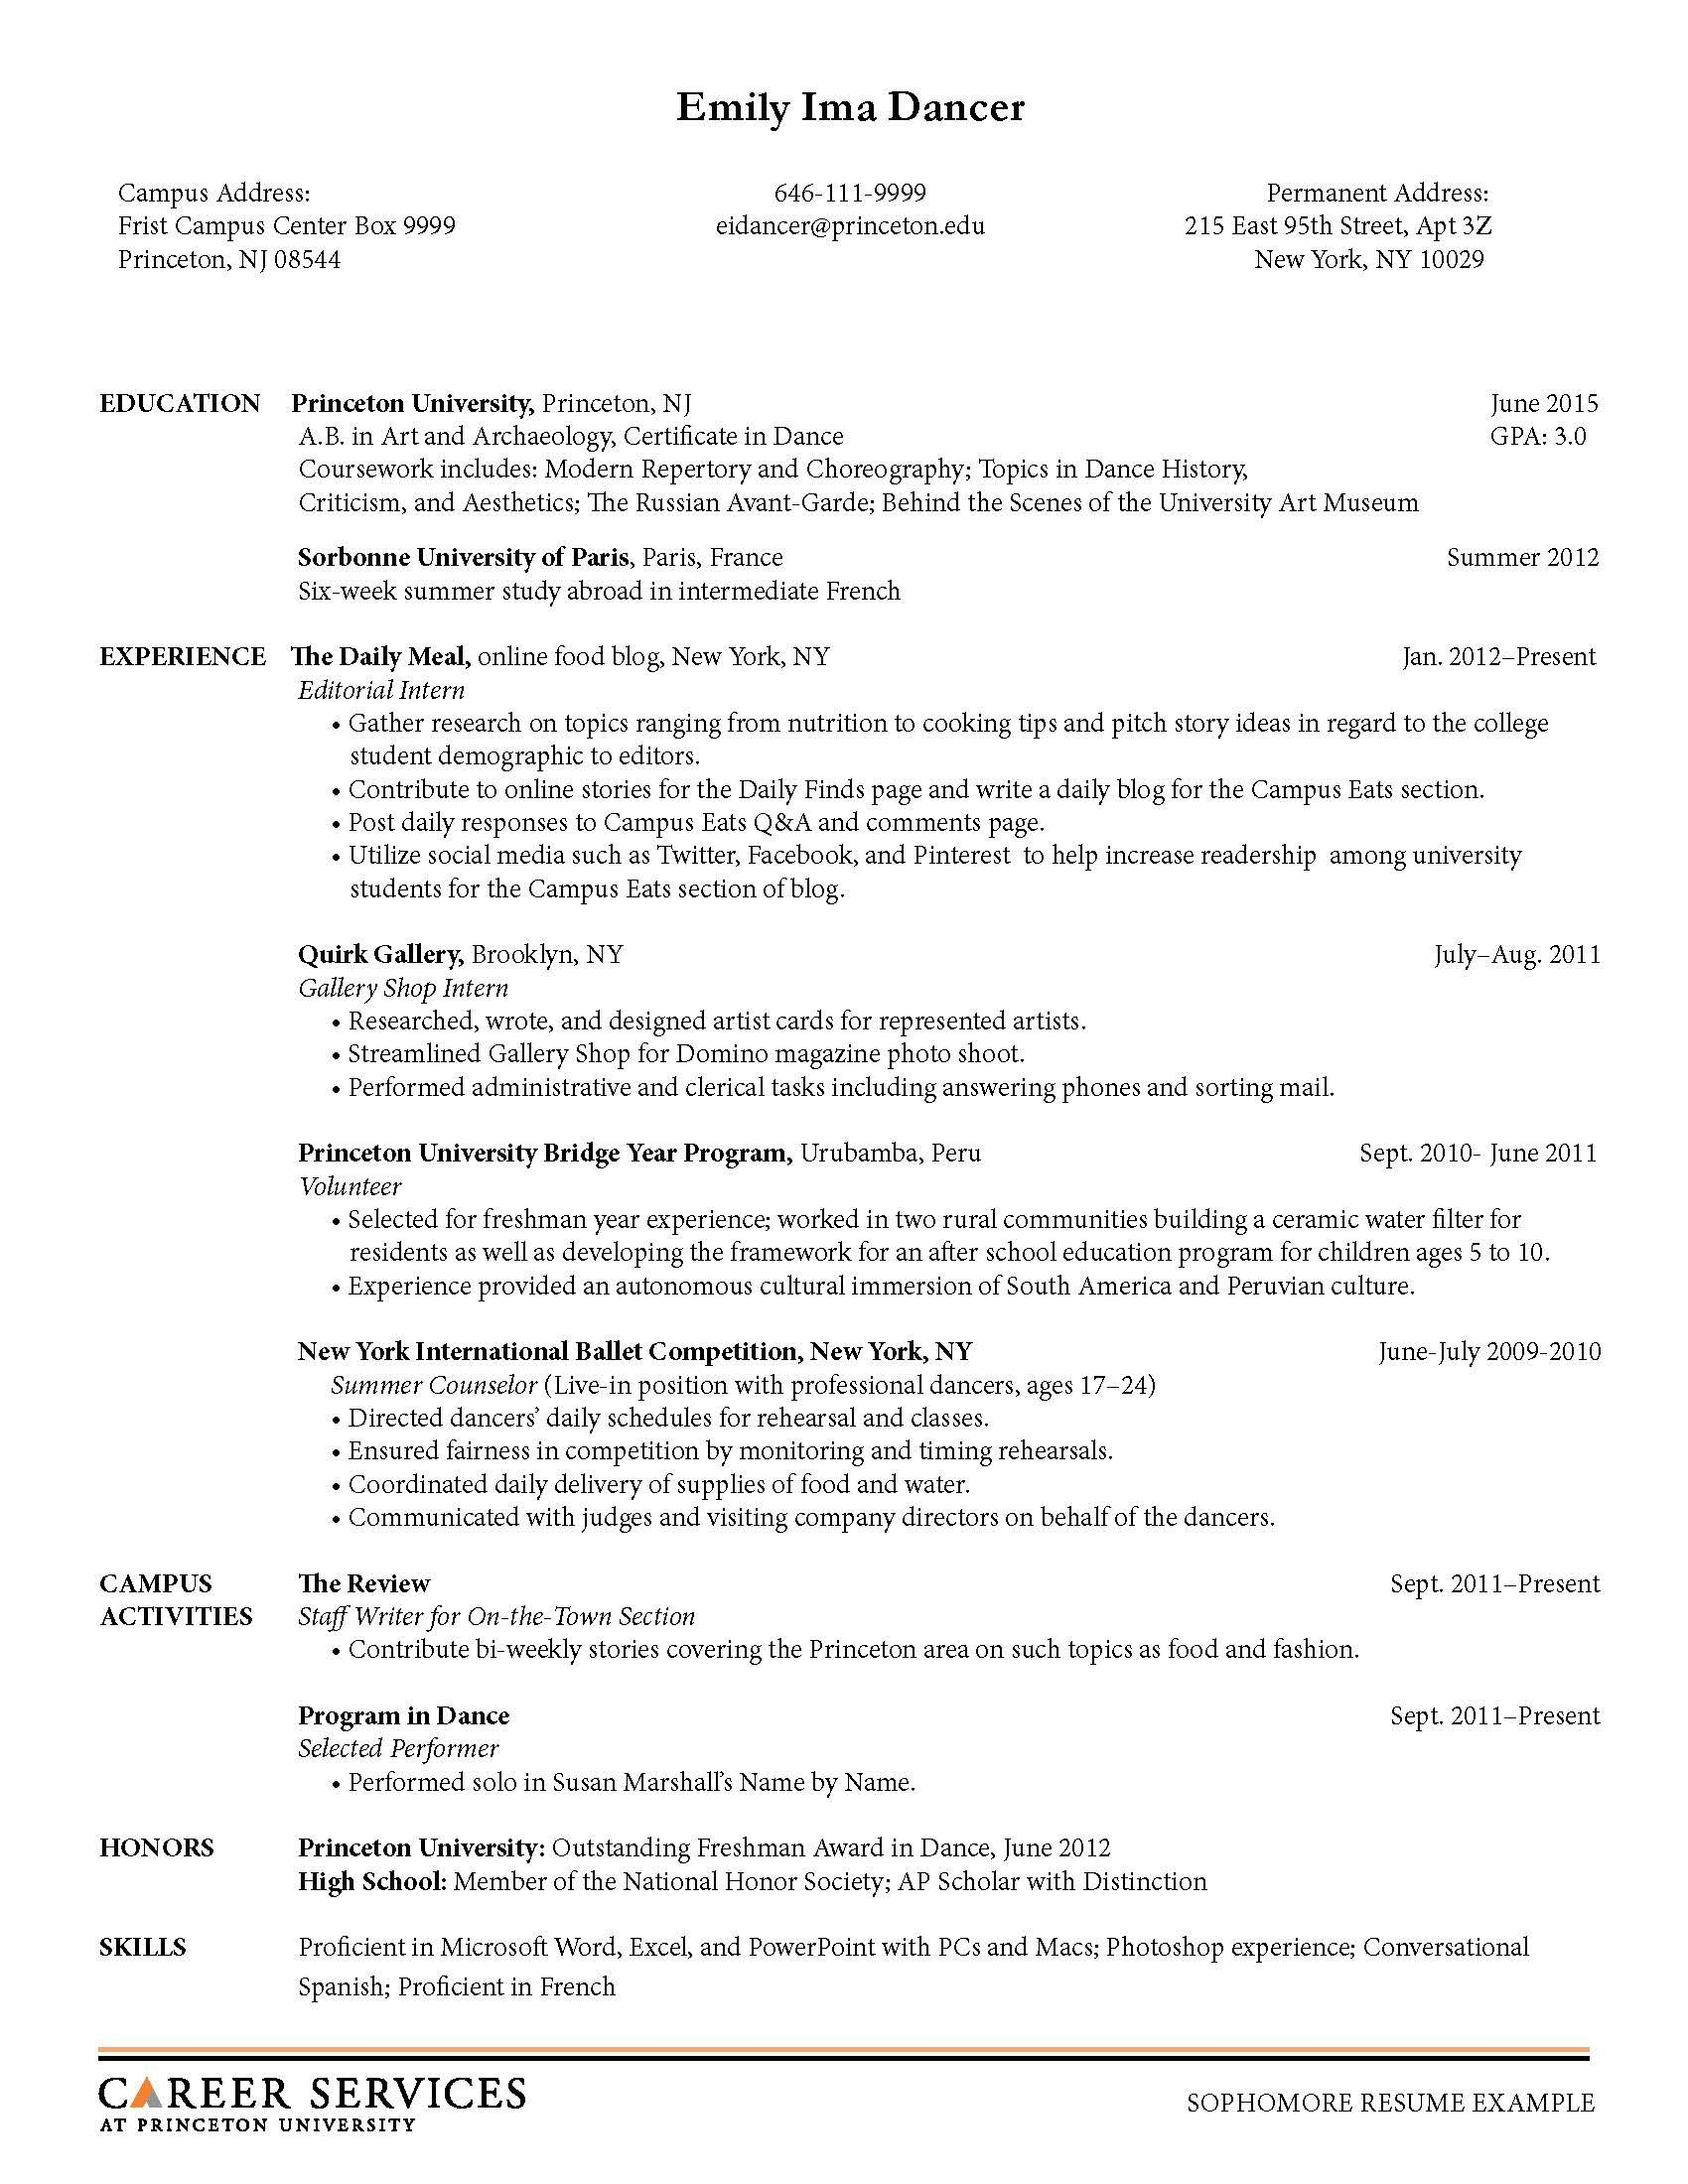 Picnictoimpeachus  Pleasant Sample Resume Resume And Career On Pinterest With Marvelous Resume For Operations Manager Besides Warehouse Skills For Resume Furthermore Teen Job Resume With Adorable Monster Search Resumes Also Accounting Resume Example In Addition Receptionist Resume Template And Resume Example For High School Student As Well As Qualities To Put On A Resume Additionally New Nursing Graduate Resume From Pinterestcom With Picnictoimpeachus  Marvelous Sample Resume Resume And Career On Pinterest With Adorable Resume For Operations Manager Besides Warehouse Skills For Resume Furthermore Teen Job Resume And Pleasant Monster Search Resumes Also Accounting Resume Example In Addition Receptionist Resume Template From Pinterestcom